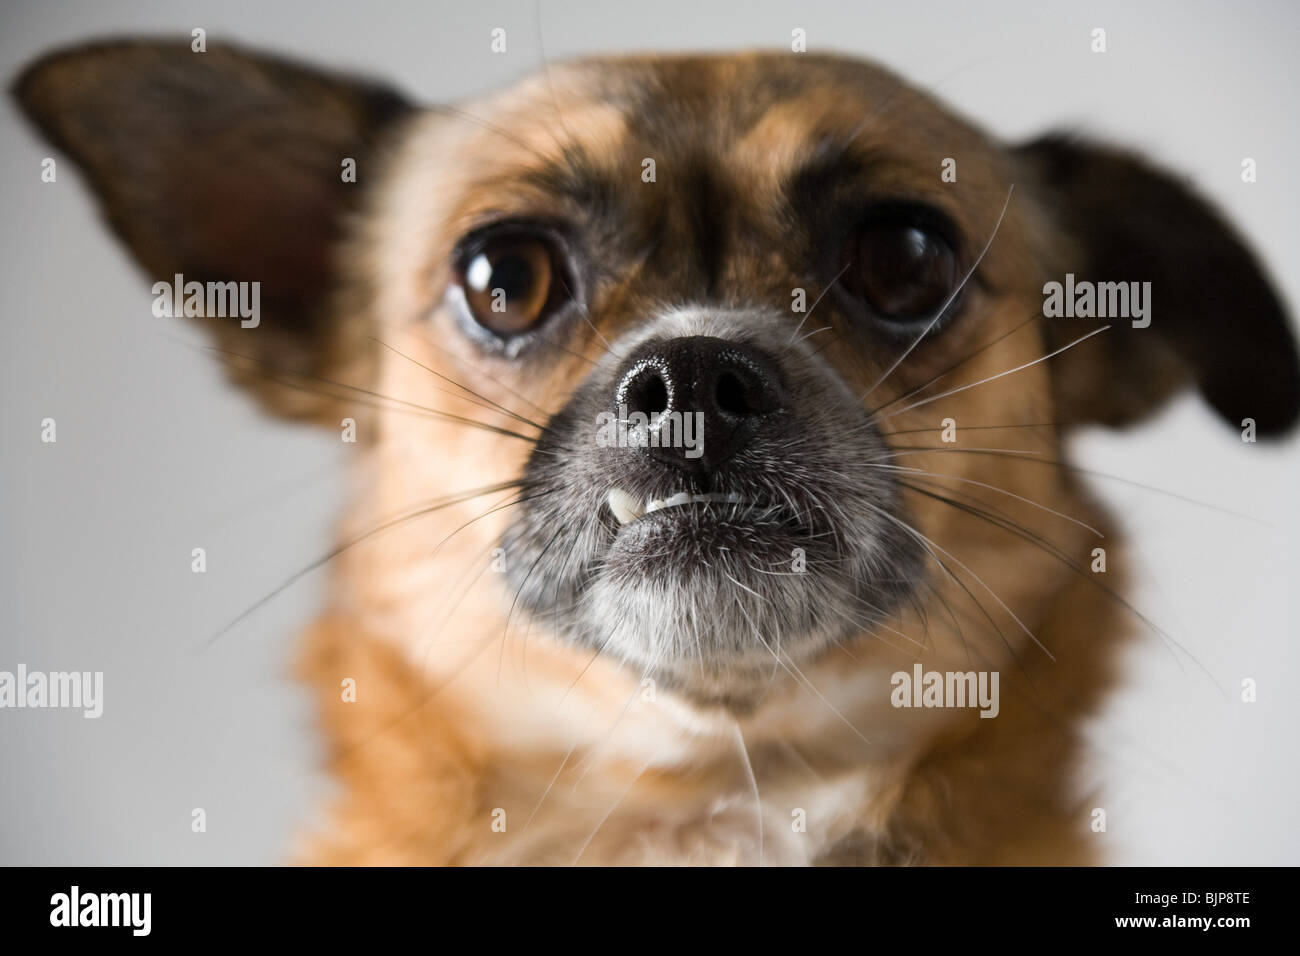 Whisker Anatomy Stock Photos & Whisker Anatomy Stock Images - Alamy